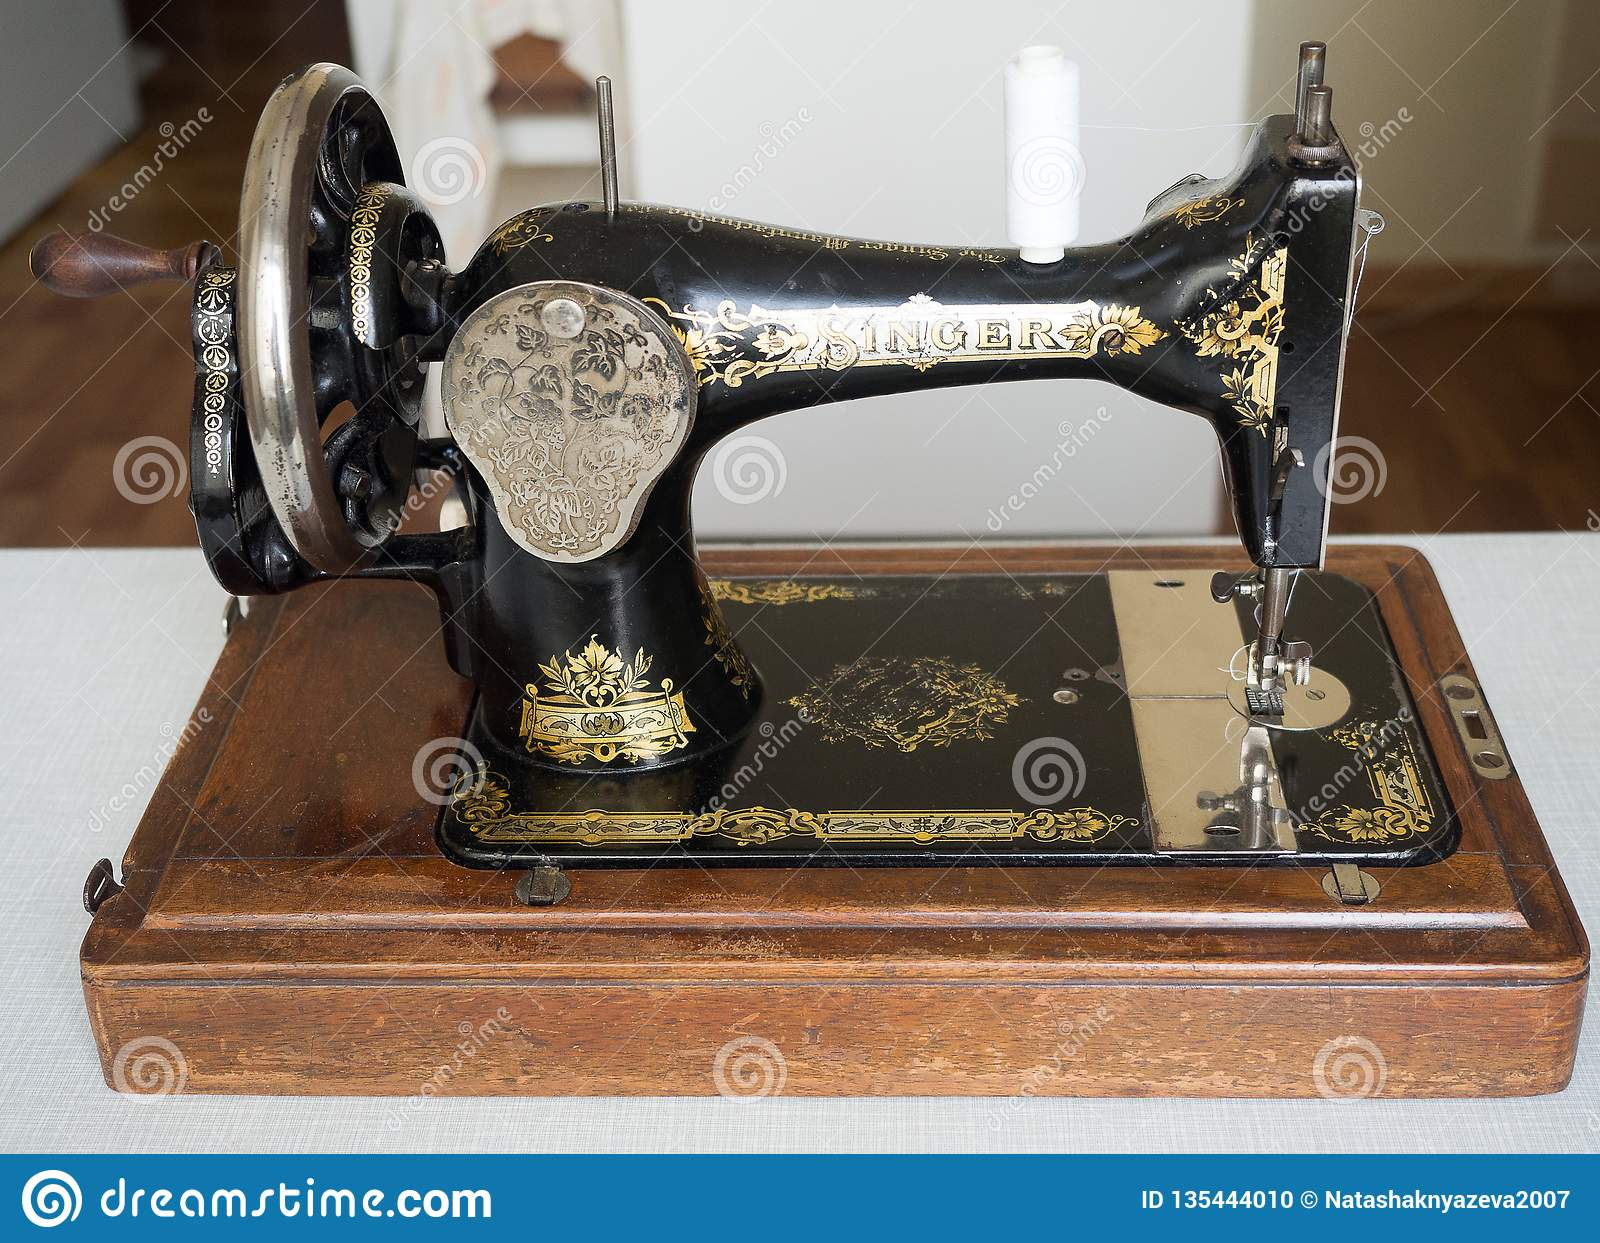 First Hand SINGER Sewing Machine, Selective Focus Editorial